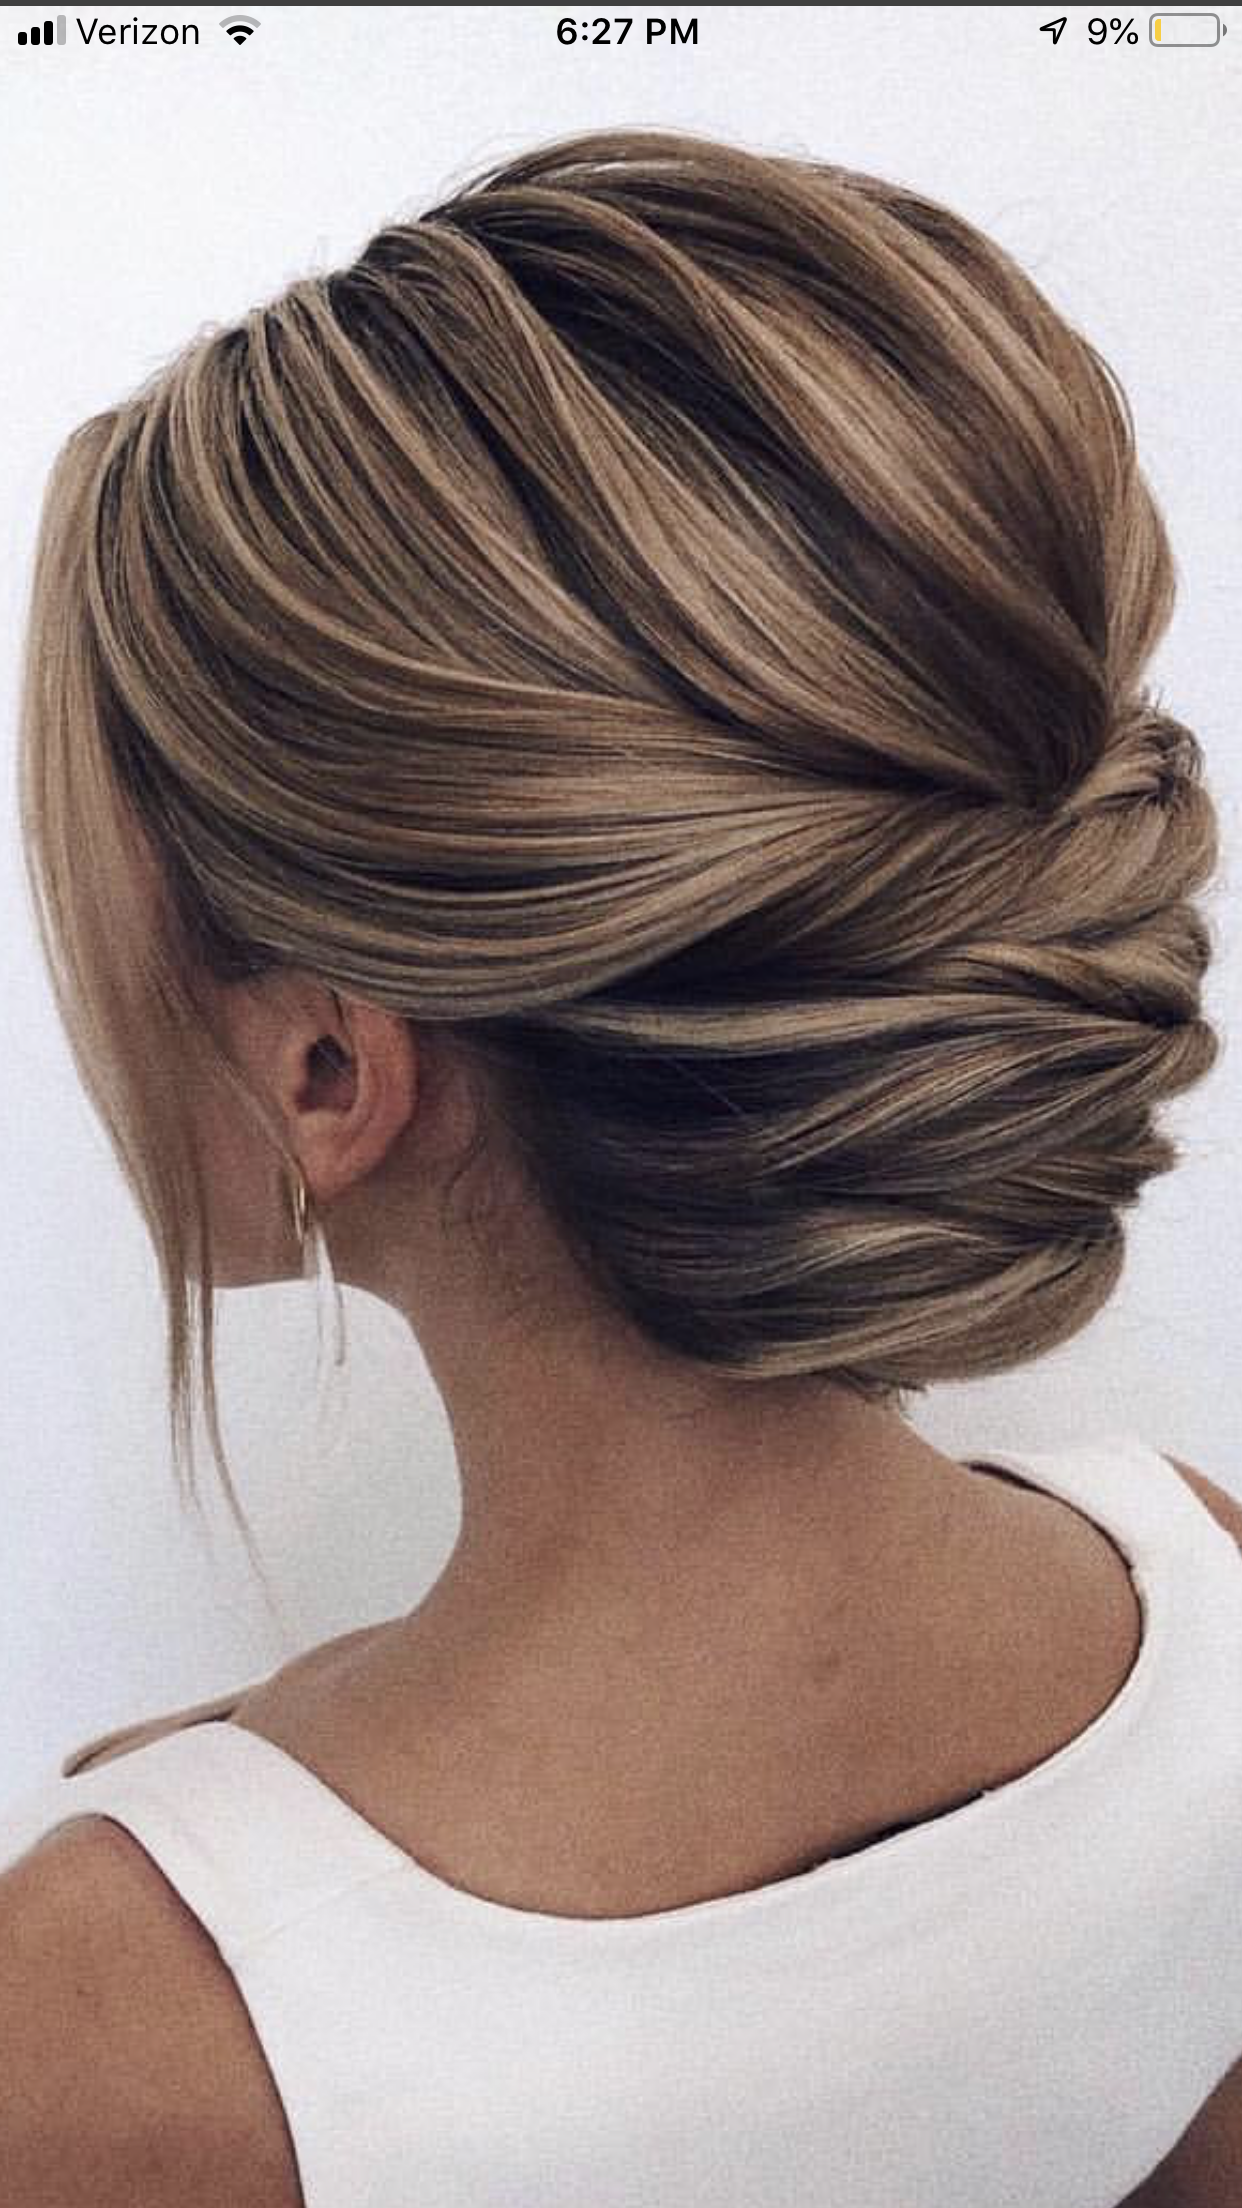 Pin By Laura Soto On Wedding Inspiration Mother Of The Bride Hair Hair Styles Bridal Hair